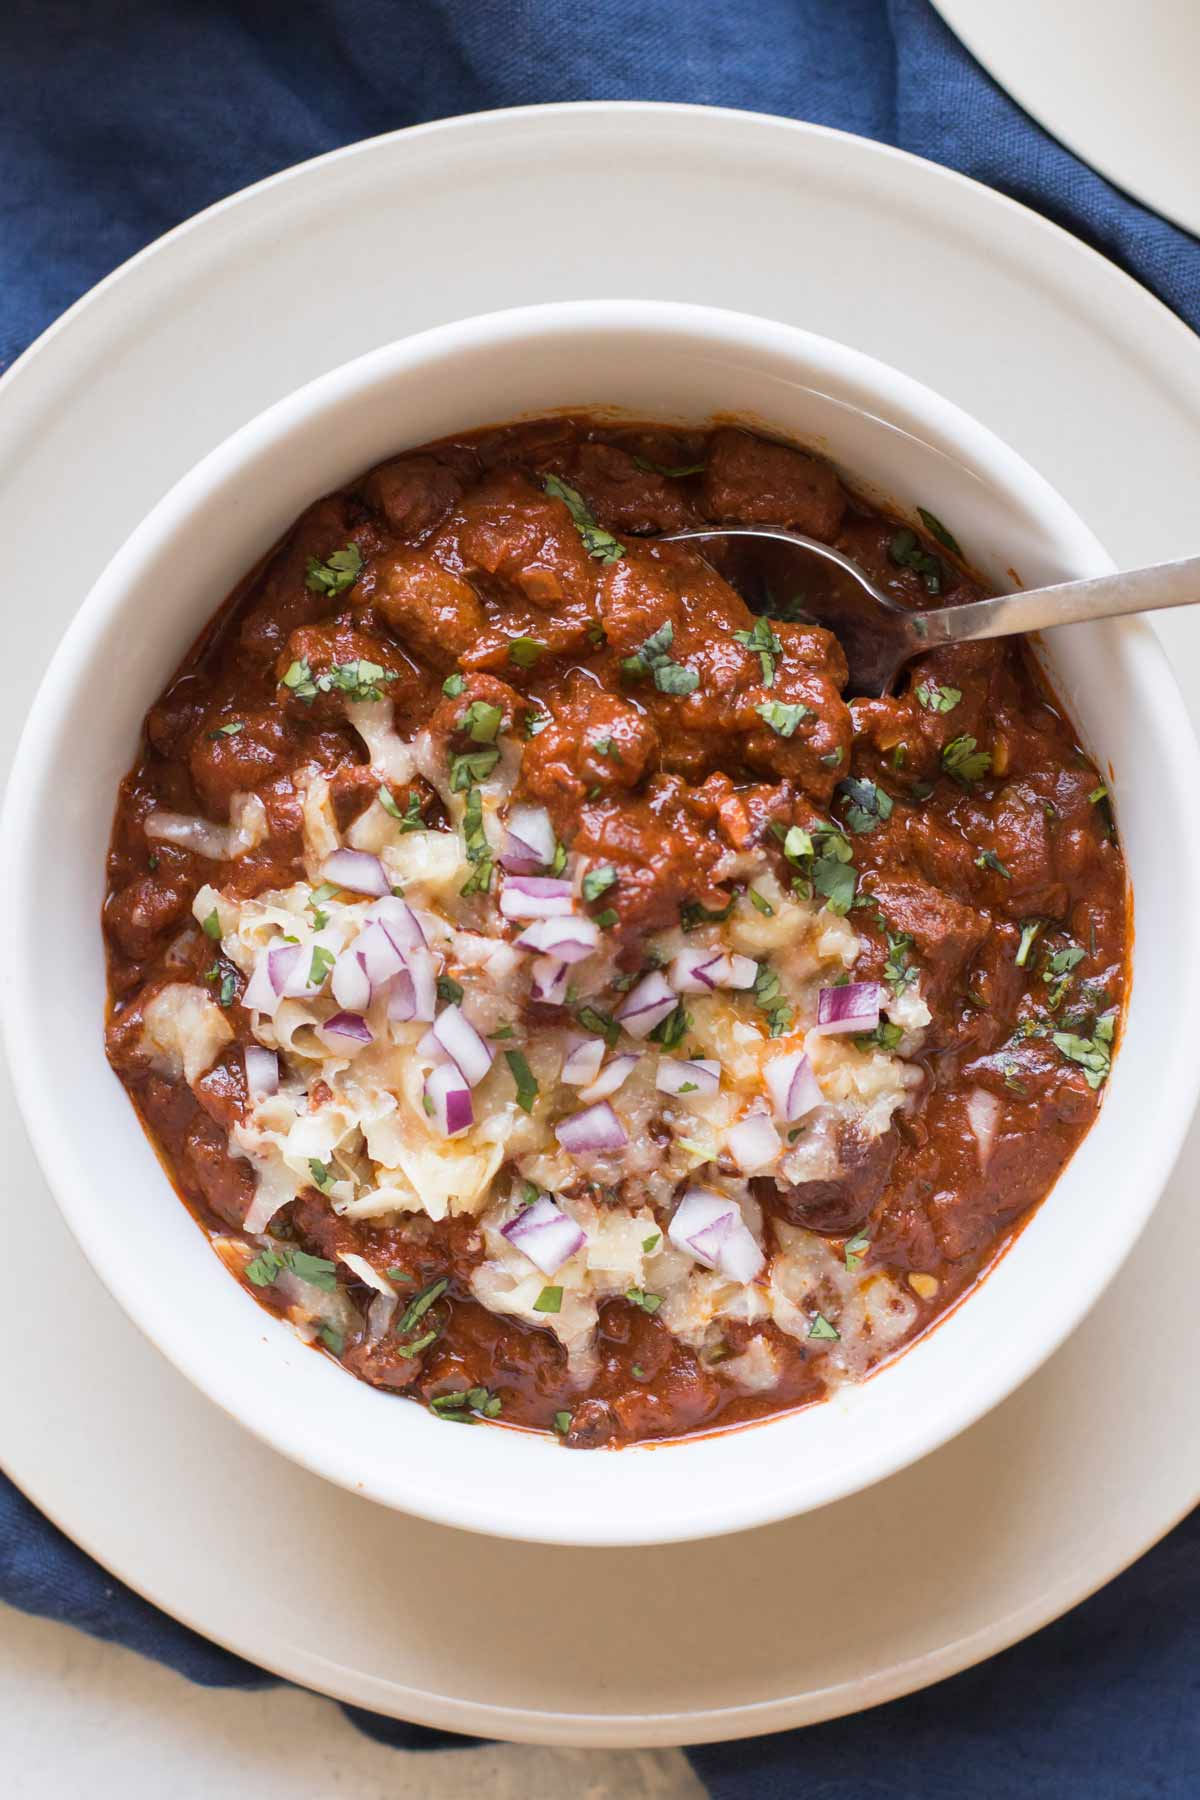 bowl of Texas chili with toppings